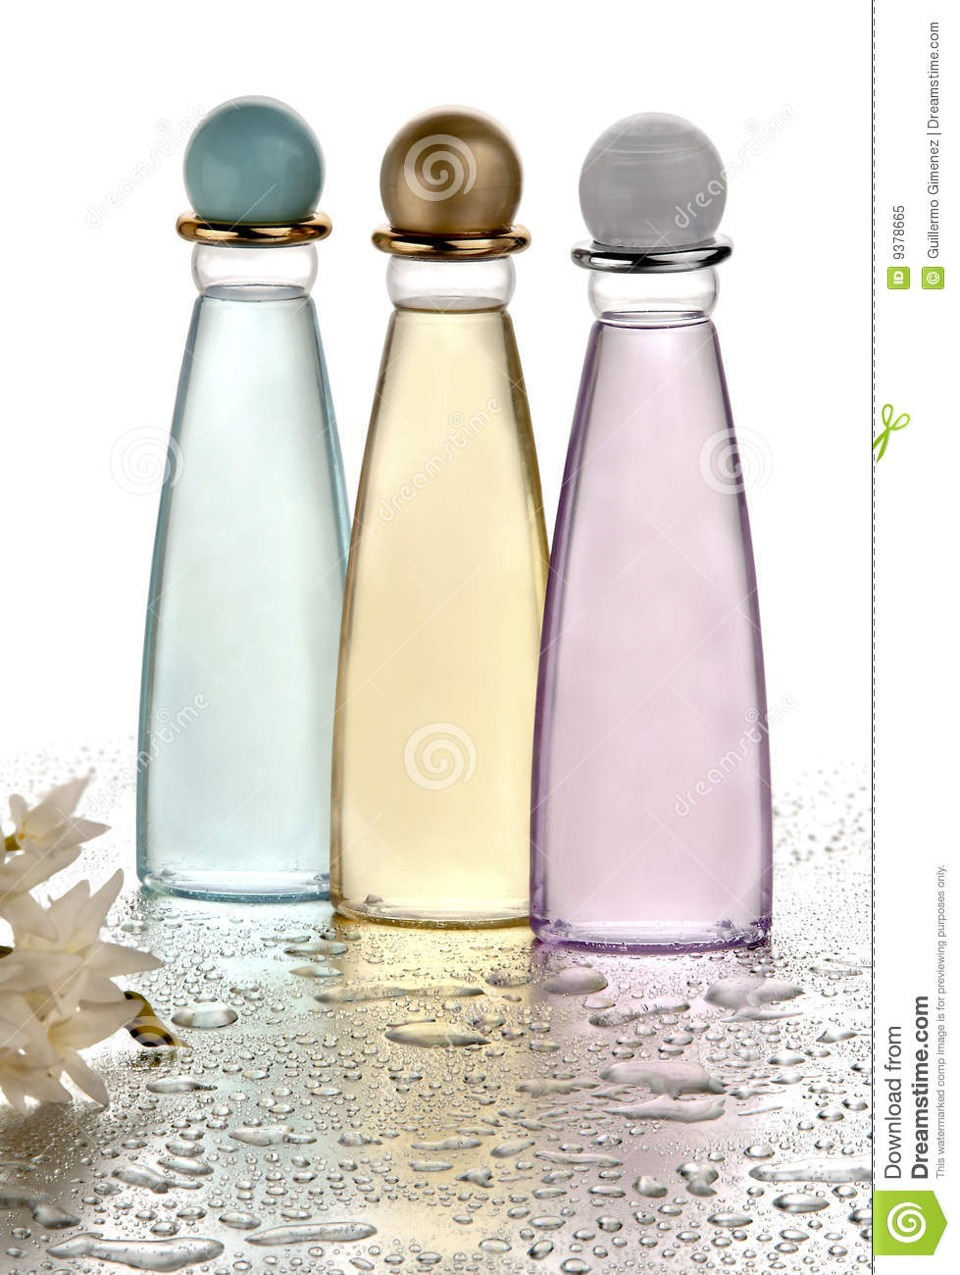 Make your own cologne without any chemicals of harsh substances!